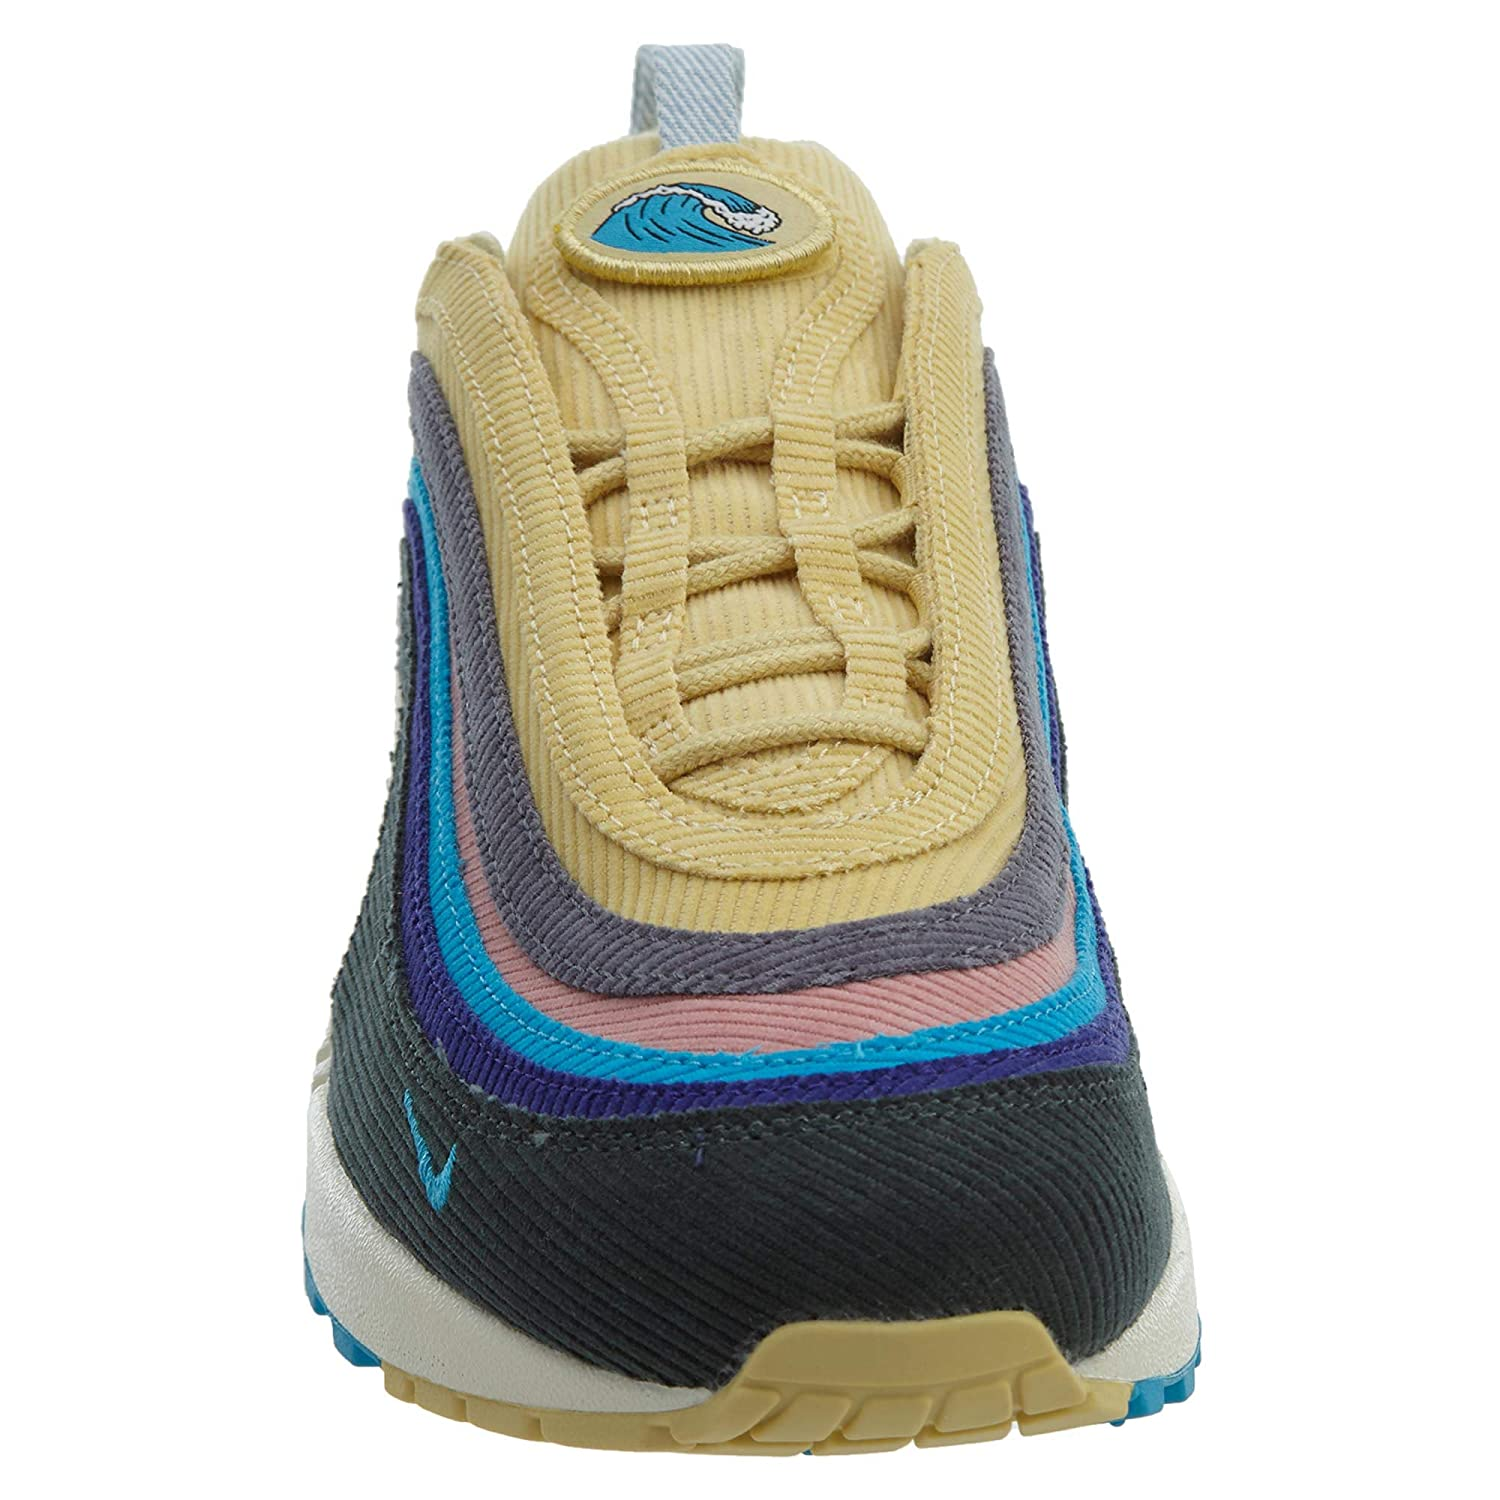 6069bd6f36 Amazon.com | Nike Air Max 1/97 Sean Wotherspoon (Extra Lace Set Only) |  Fashion Sneakers